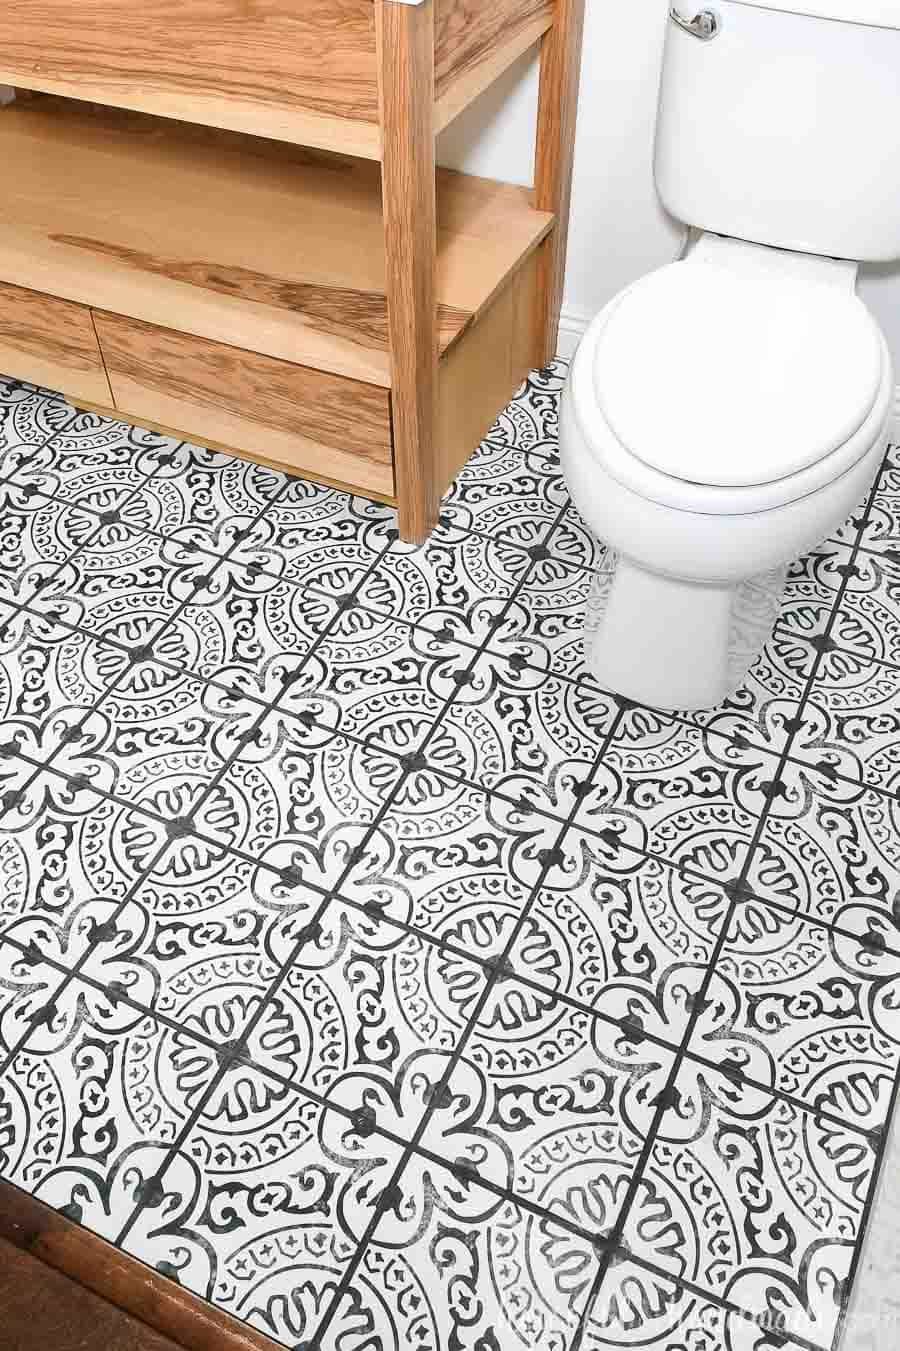 Floor tiled with black and white patterned tiles with black grout.